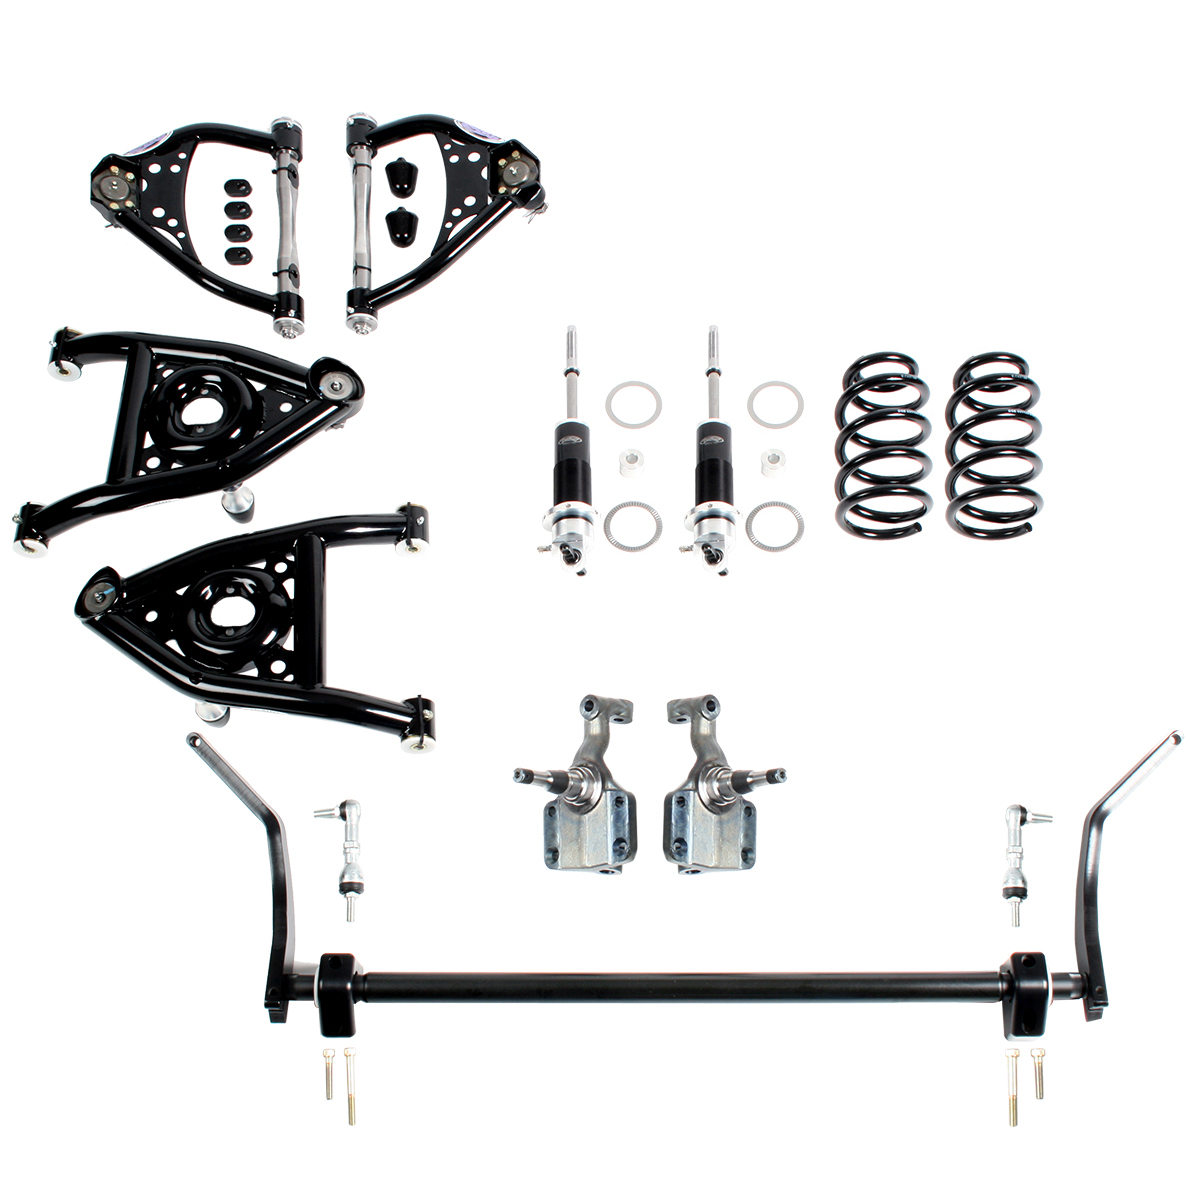 Detroit Speed  Speed Kit 2 Front Suspension Kit with Splined Sway Bar Double Adjustable Shocks w/Remote Canister 1968-1972 A-Body BBC